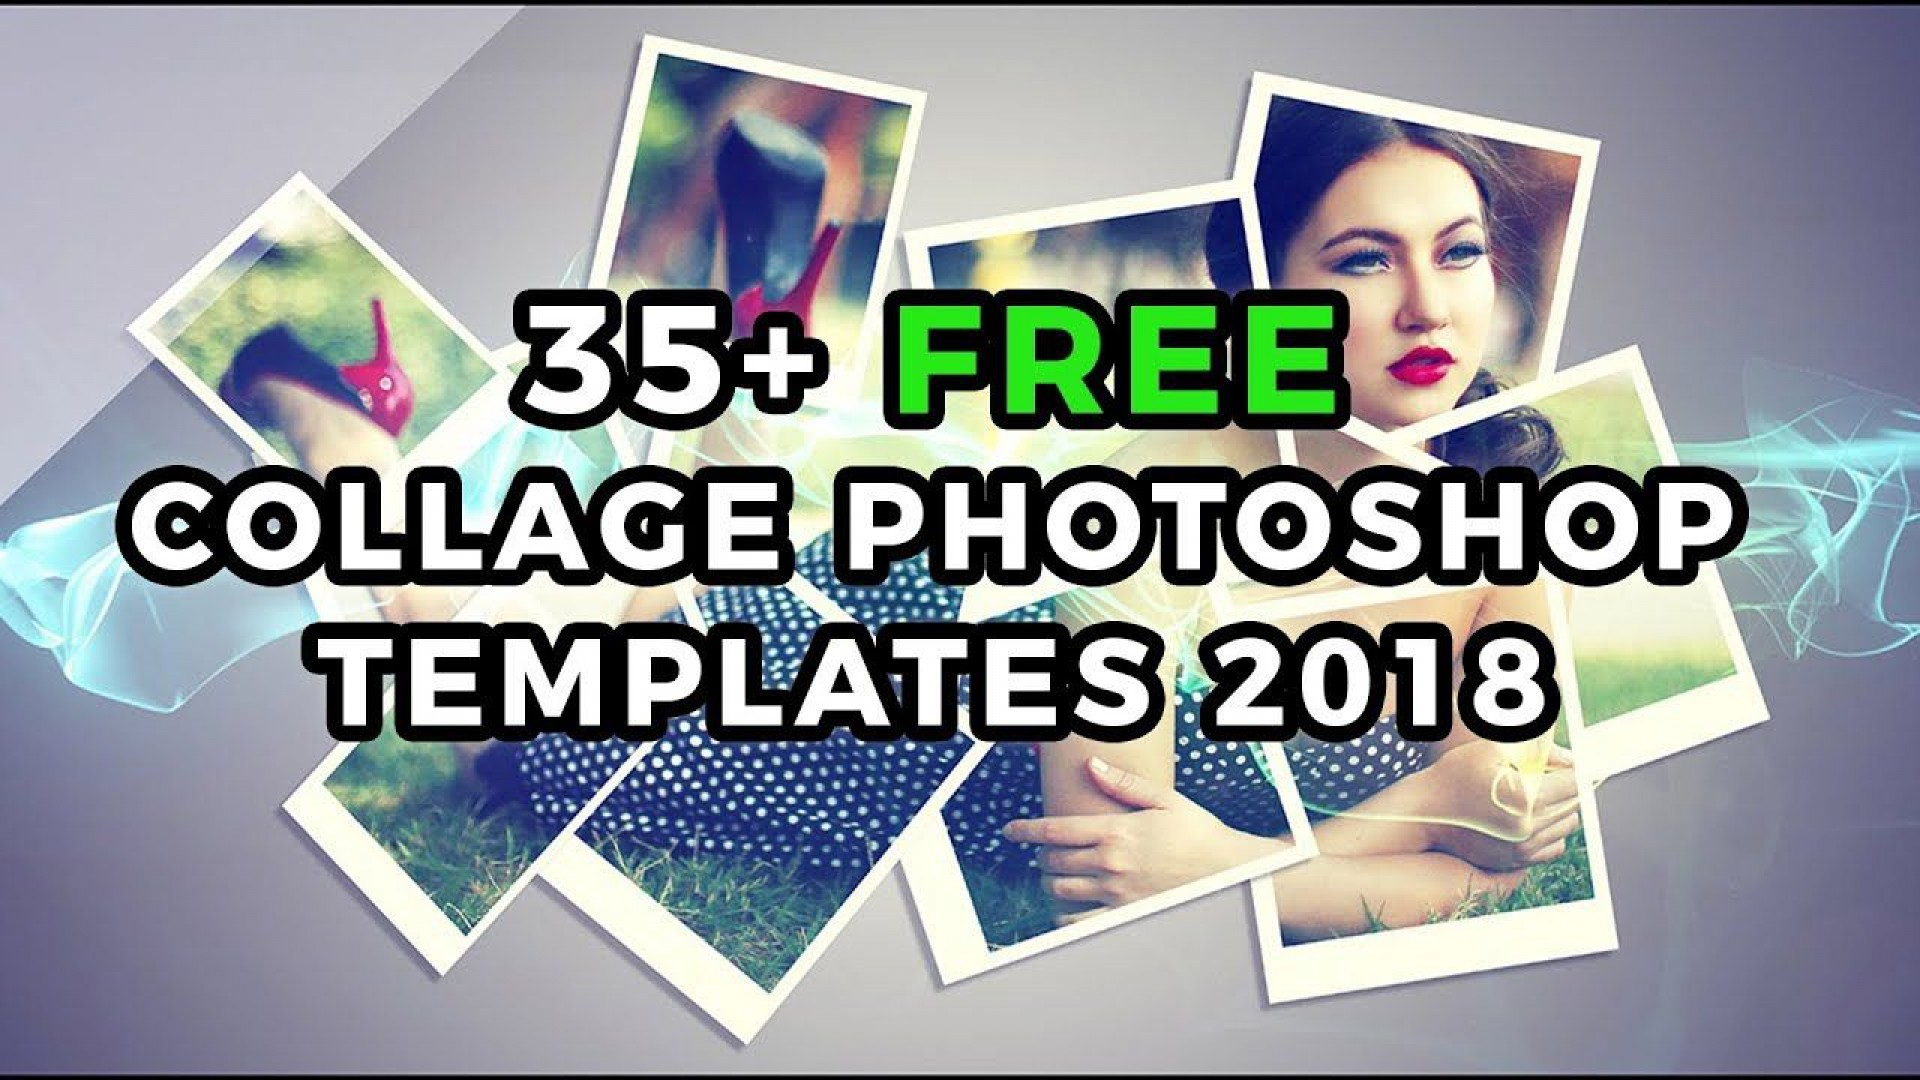 001 Beautiful Free Photo Collage Template Psd Sample  Heart Shaped Download1920